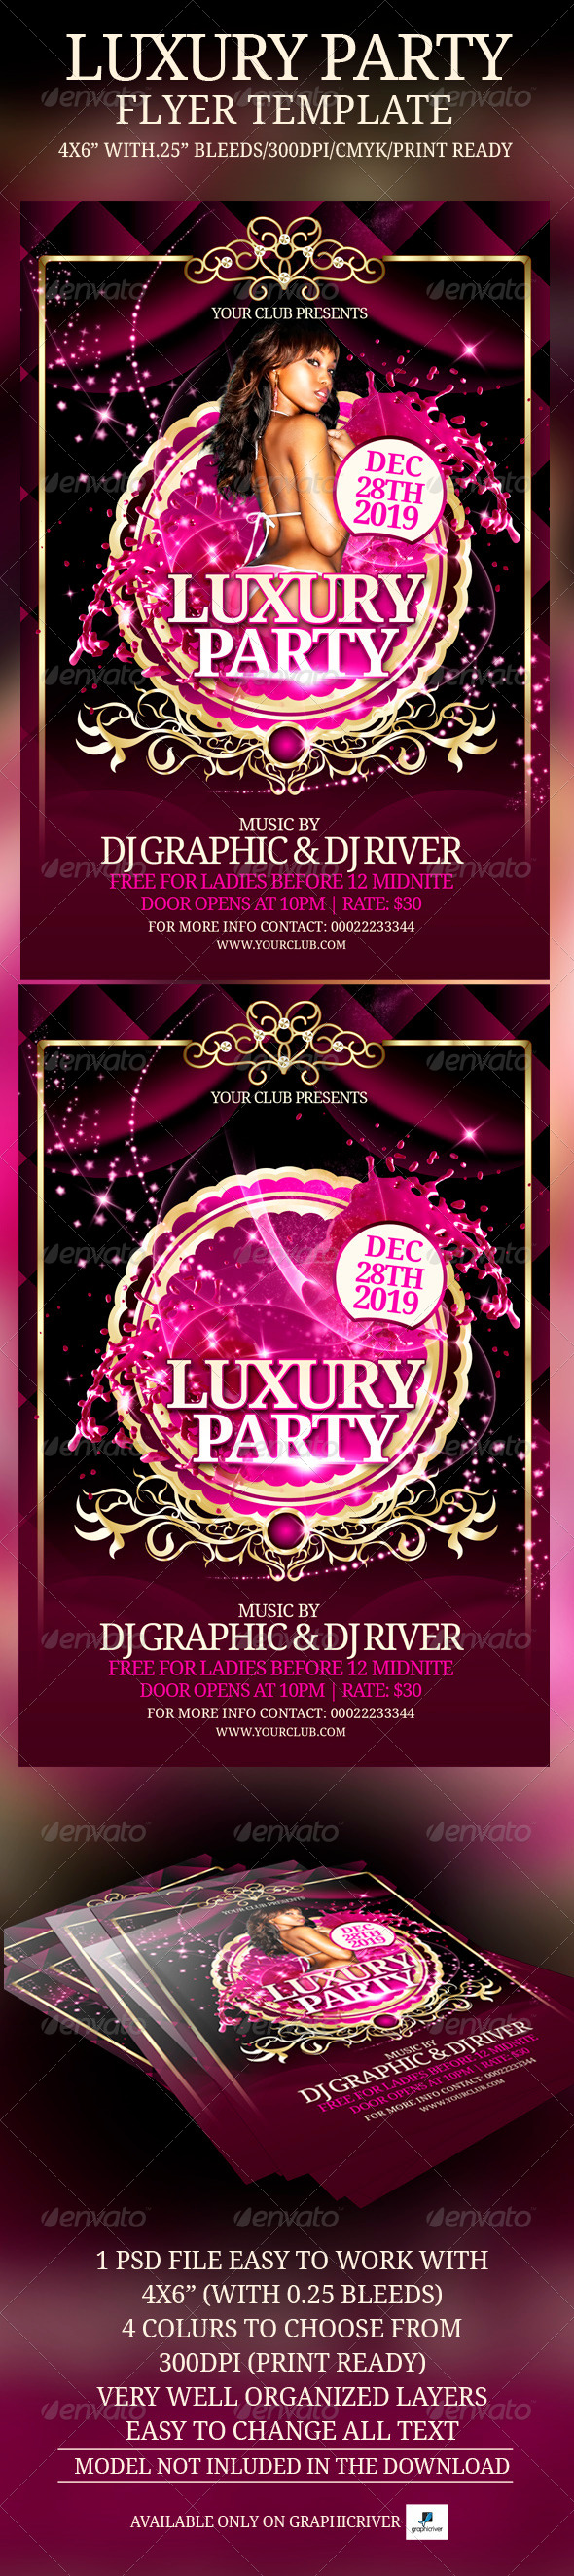 GraphicRiver Luxury Party Flyer Template 4607775